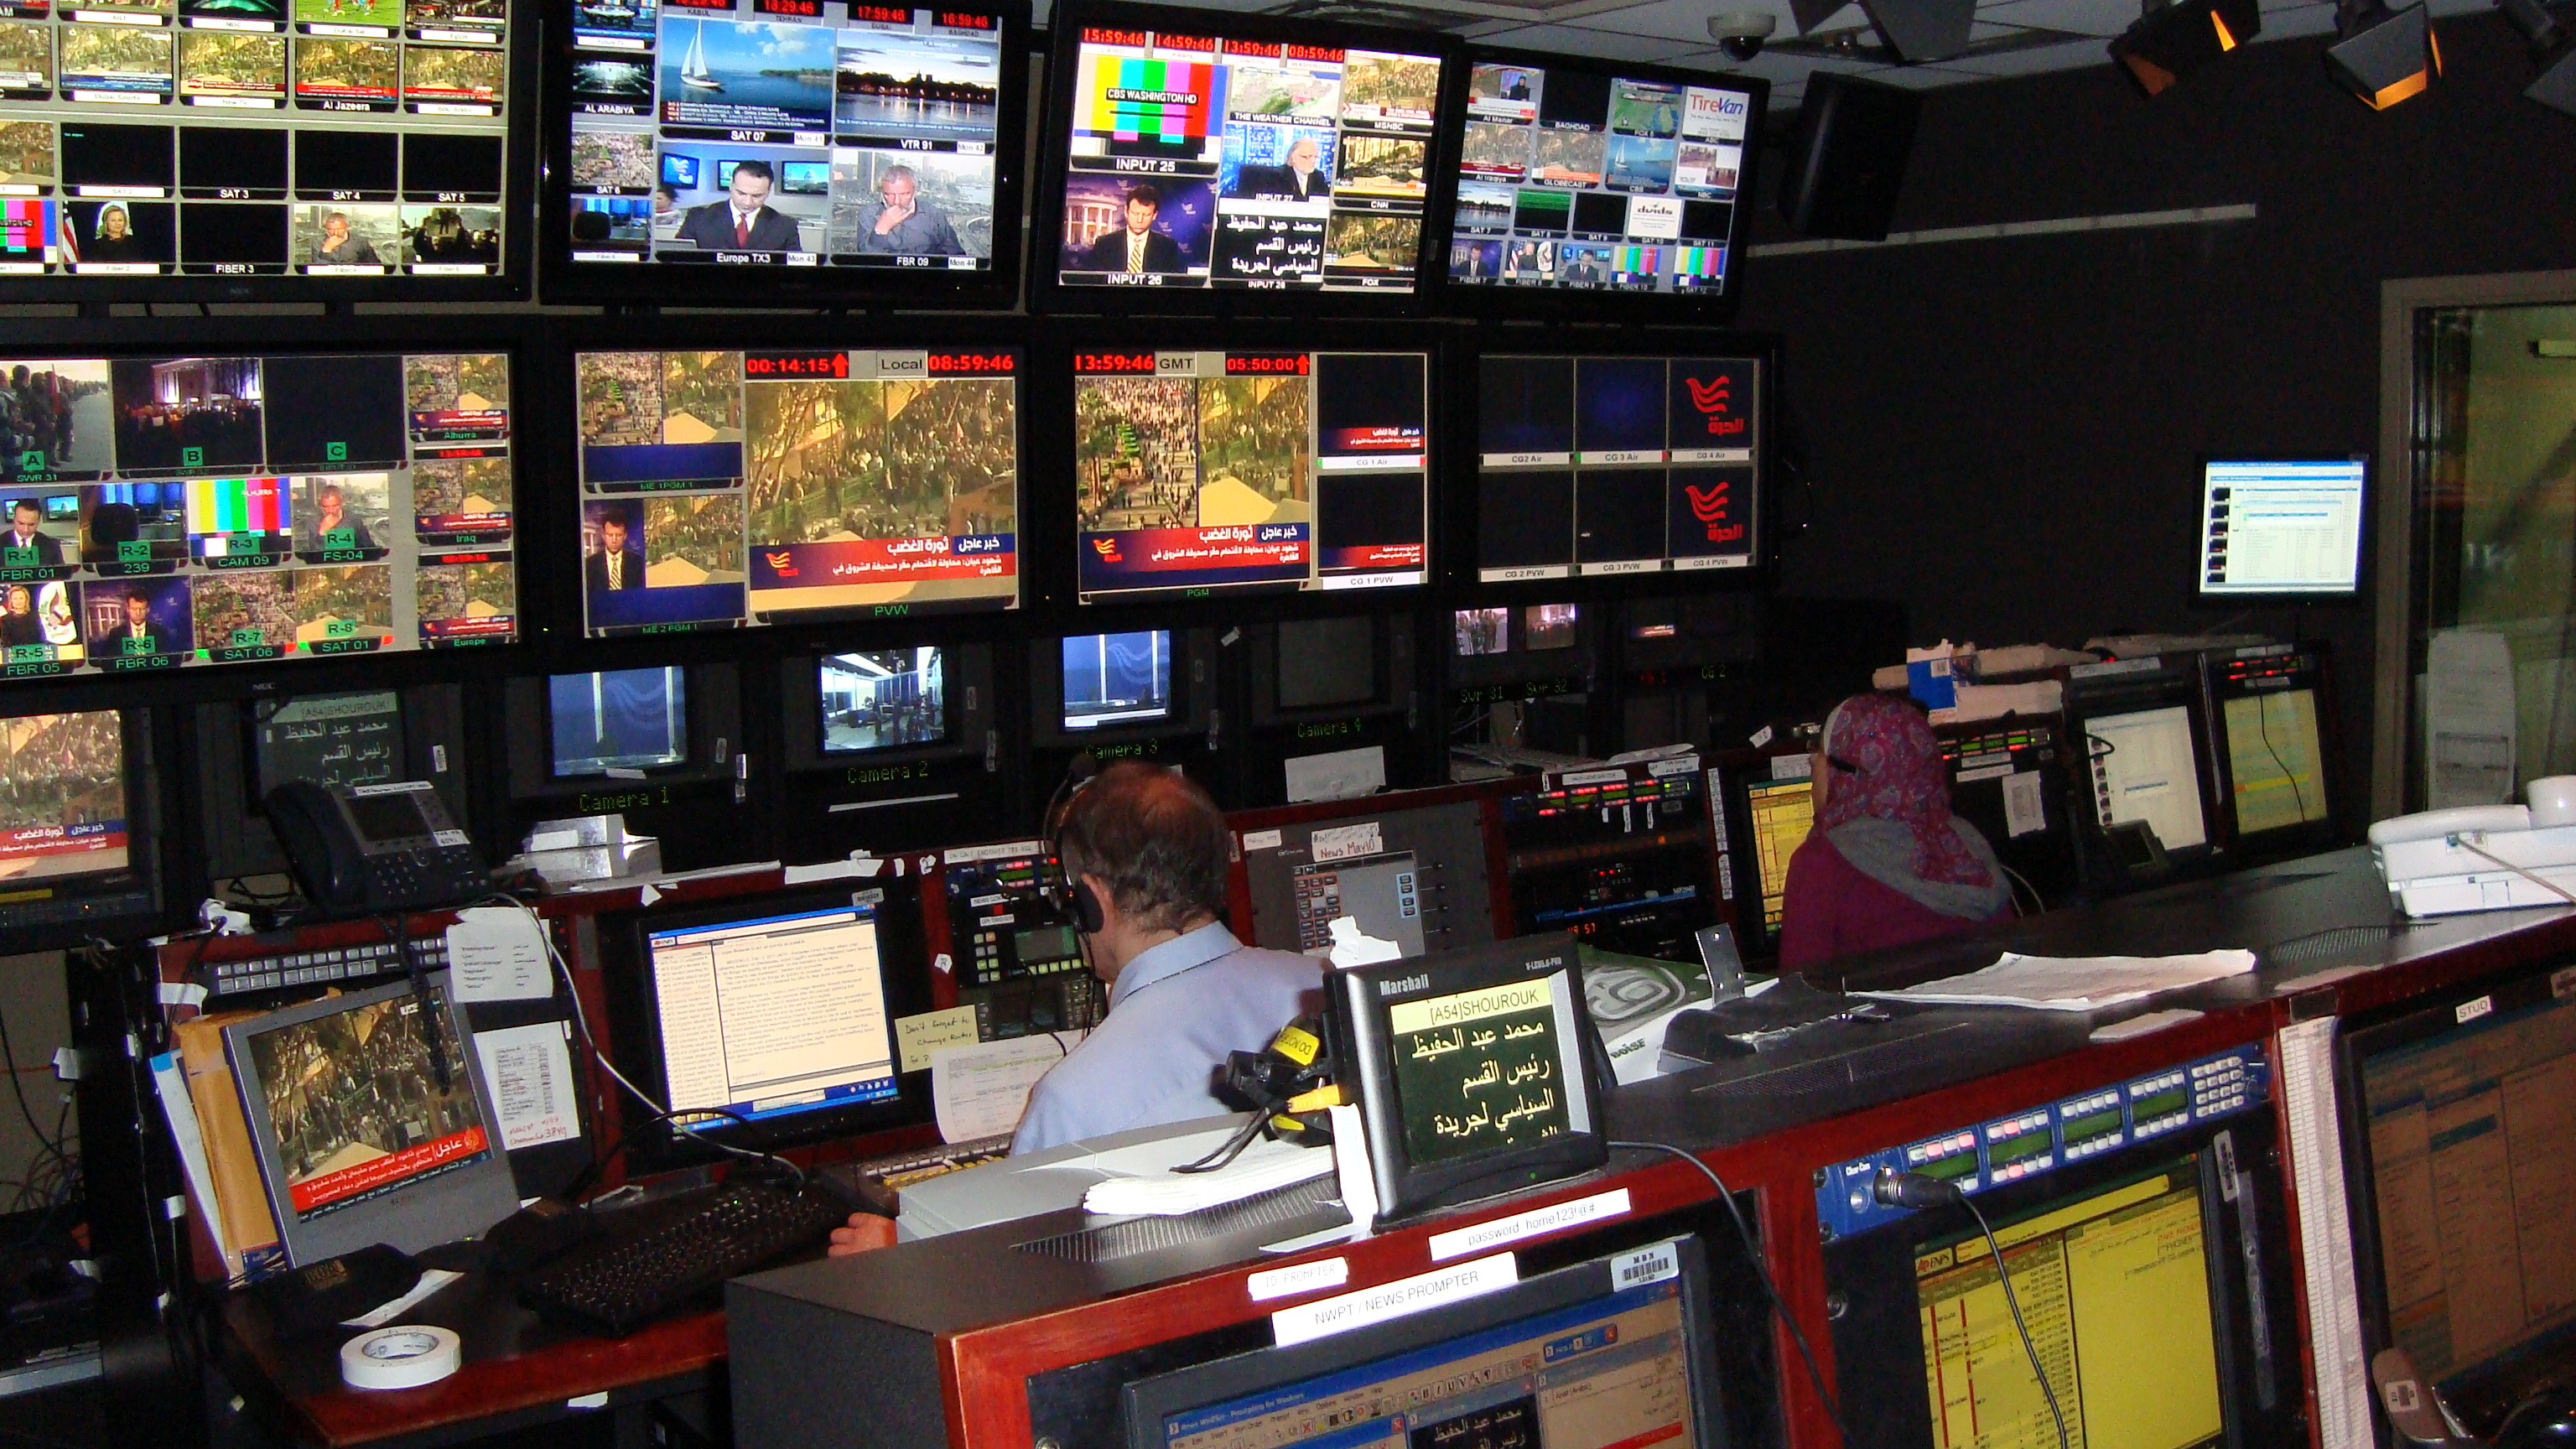 Excellent File:Control room of Arabic-language satellite TV channel Alhurra  3072 x 1728 · 2091 kB · jpeg